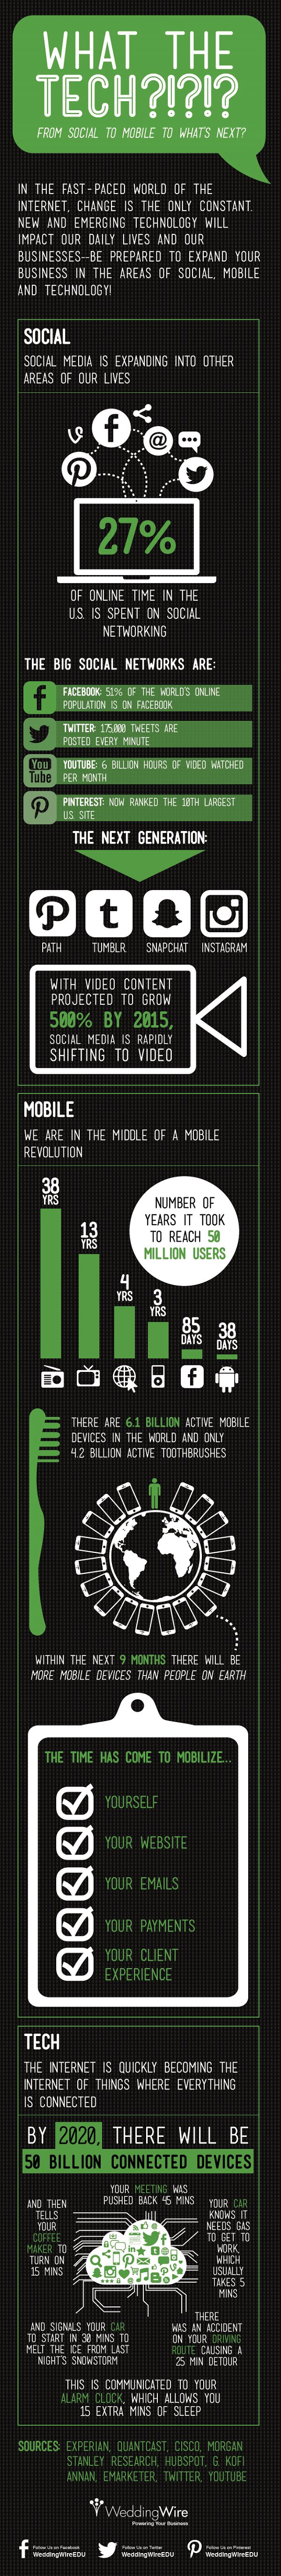 What the Tech?! Social Media, #Mobile & #Tech Trends and Stats - #infographic  #SocialMedia #TechTrends #technology: Digital Marketing, Infographic Socialmedia, Computers Technology, Hackney Nick, Technology Trends, Techtrend Technology, Mobiles Tech, E Marketing Trends, Socialmedia Techtrend